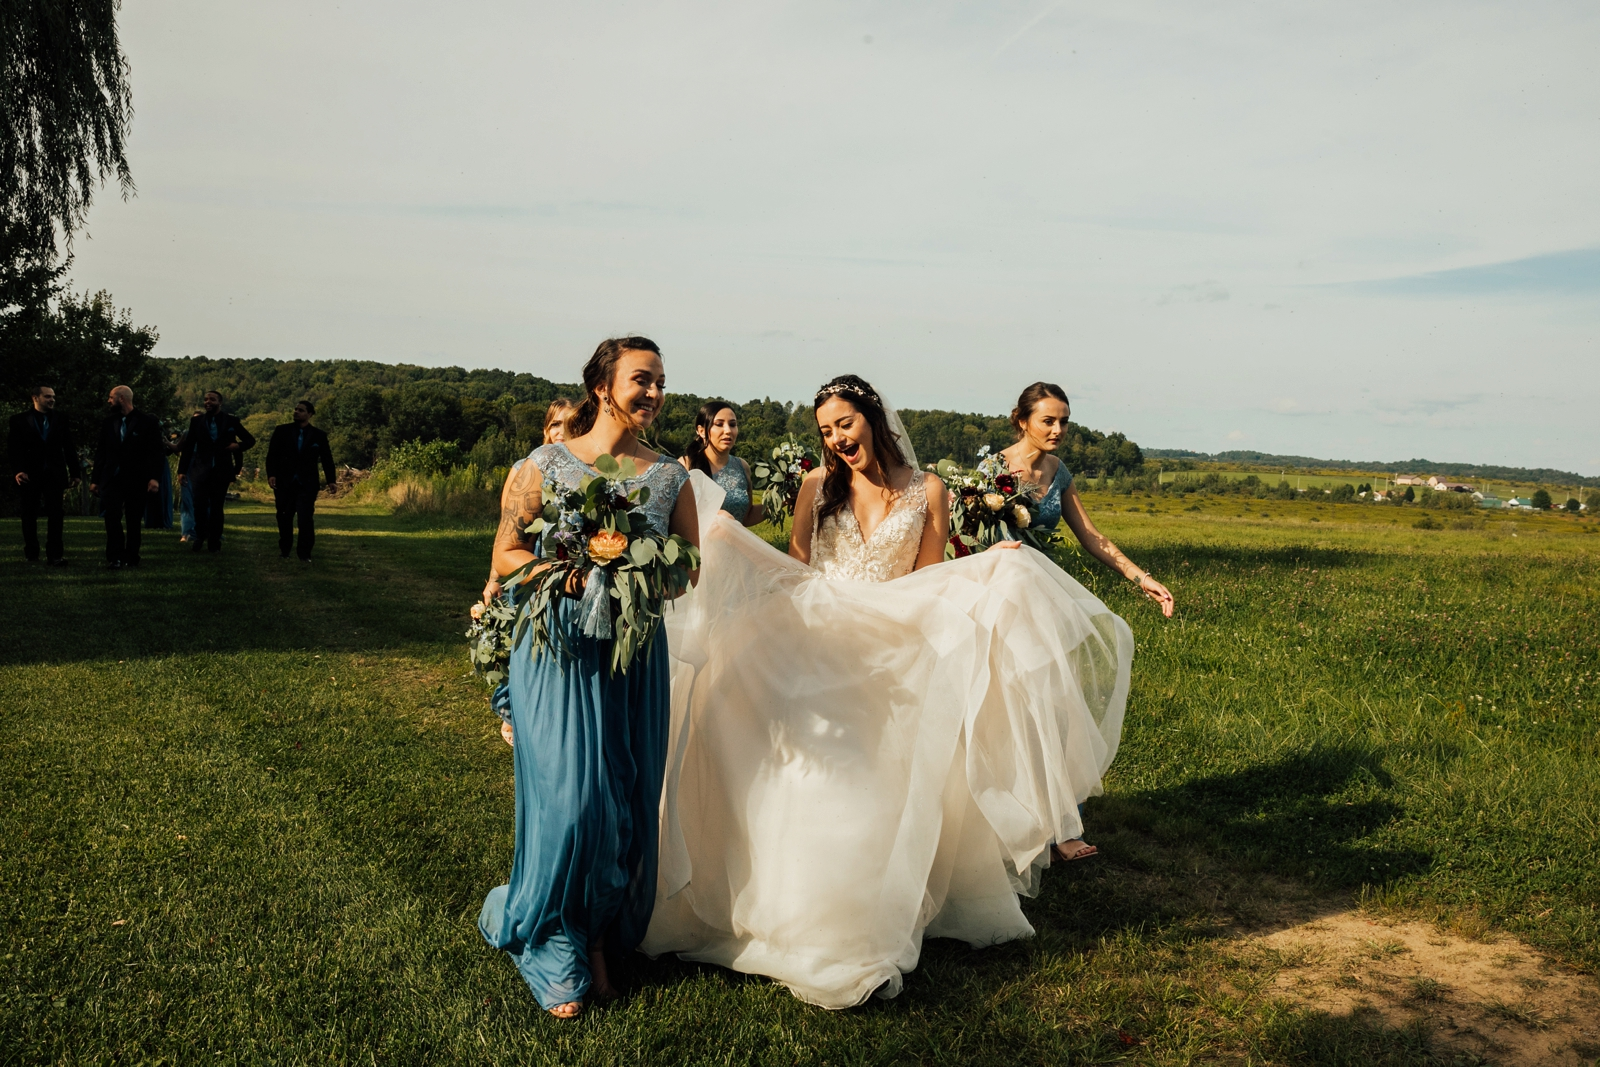 Rustic Acres Farm Wedding Photographer Pennsylvania Pittsburgh